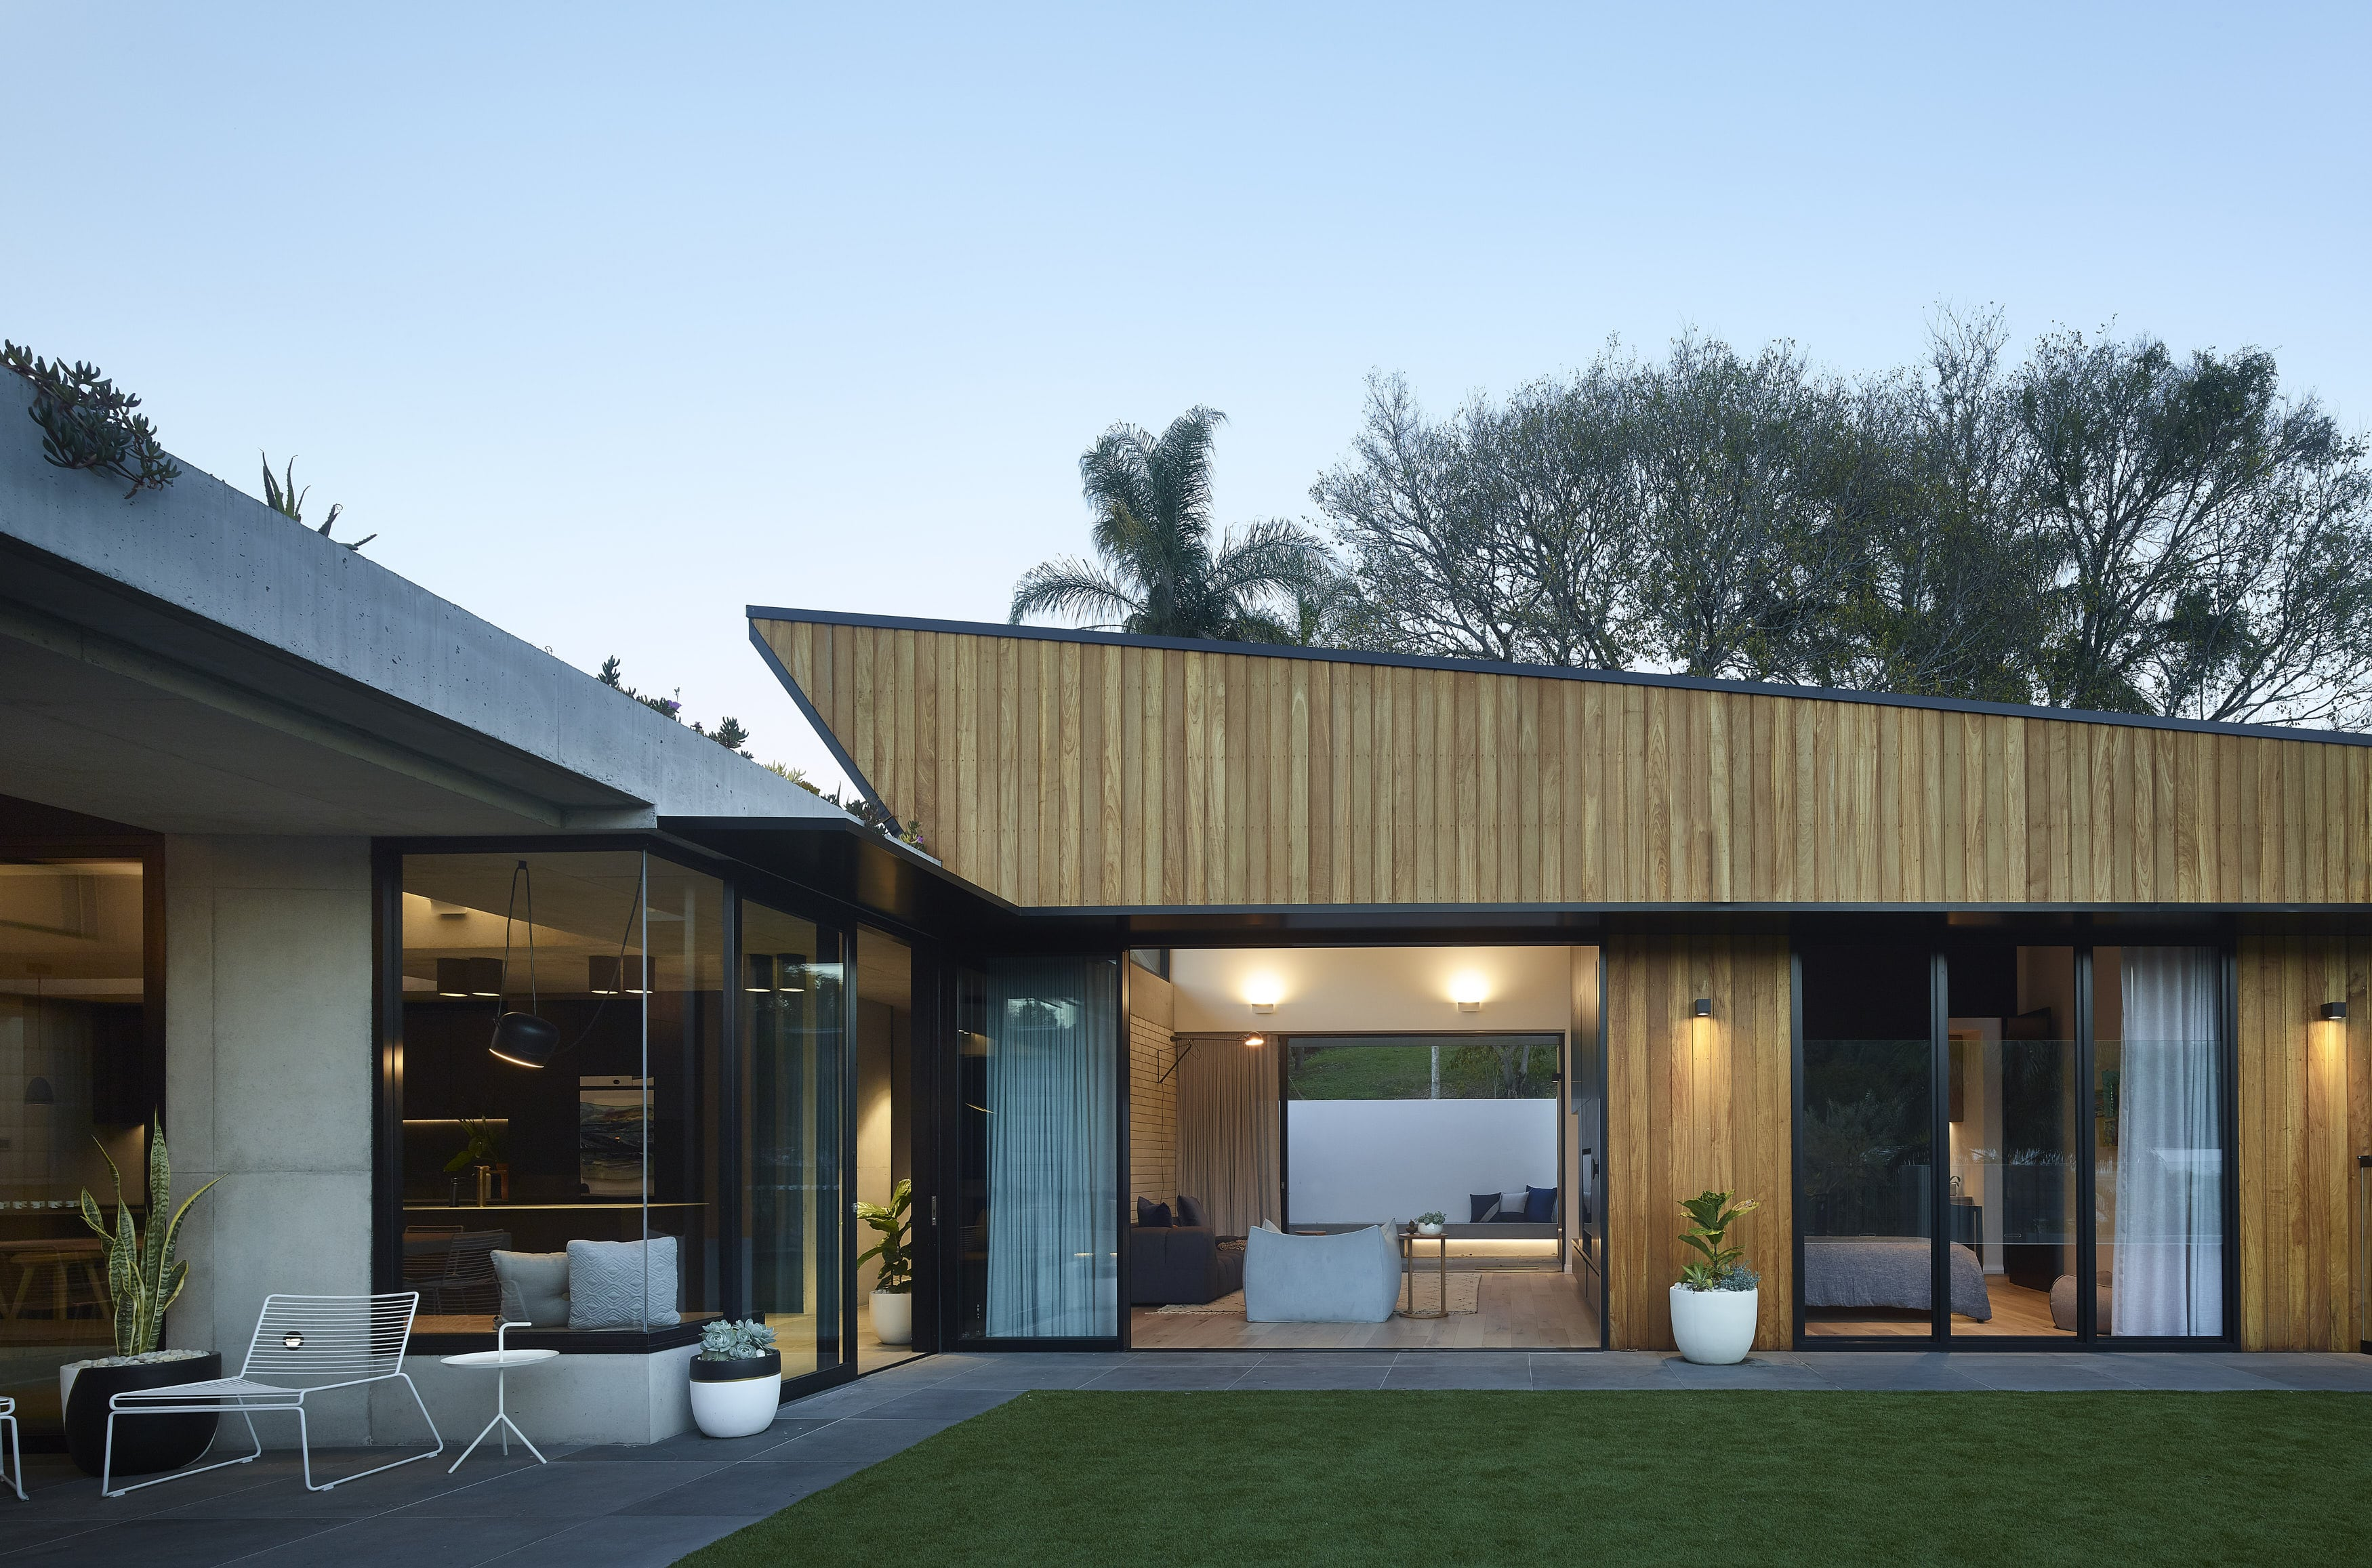 Gallery Of Sorrel Street By Shaun Lockyer Architects Local Australian Design And Interiors Paddington, Qld Image 3 Min